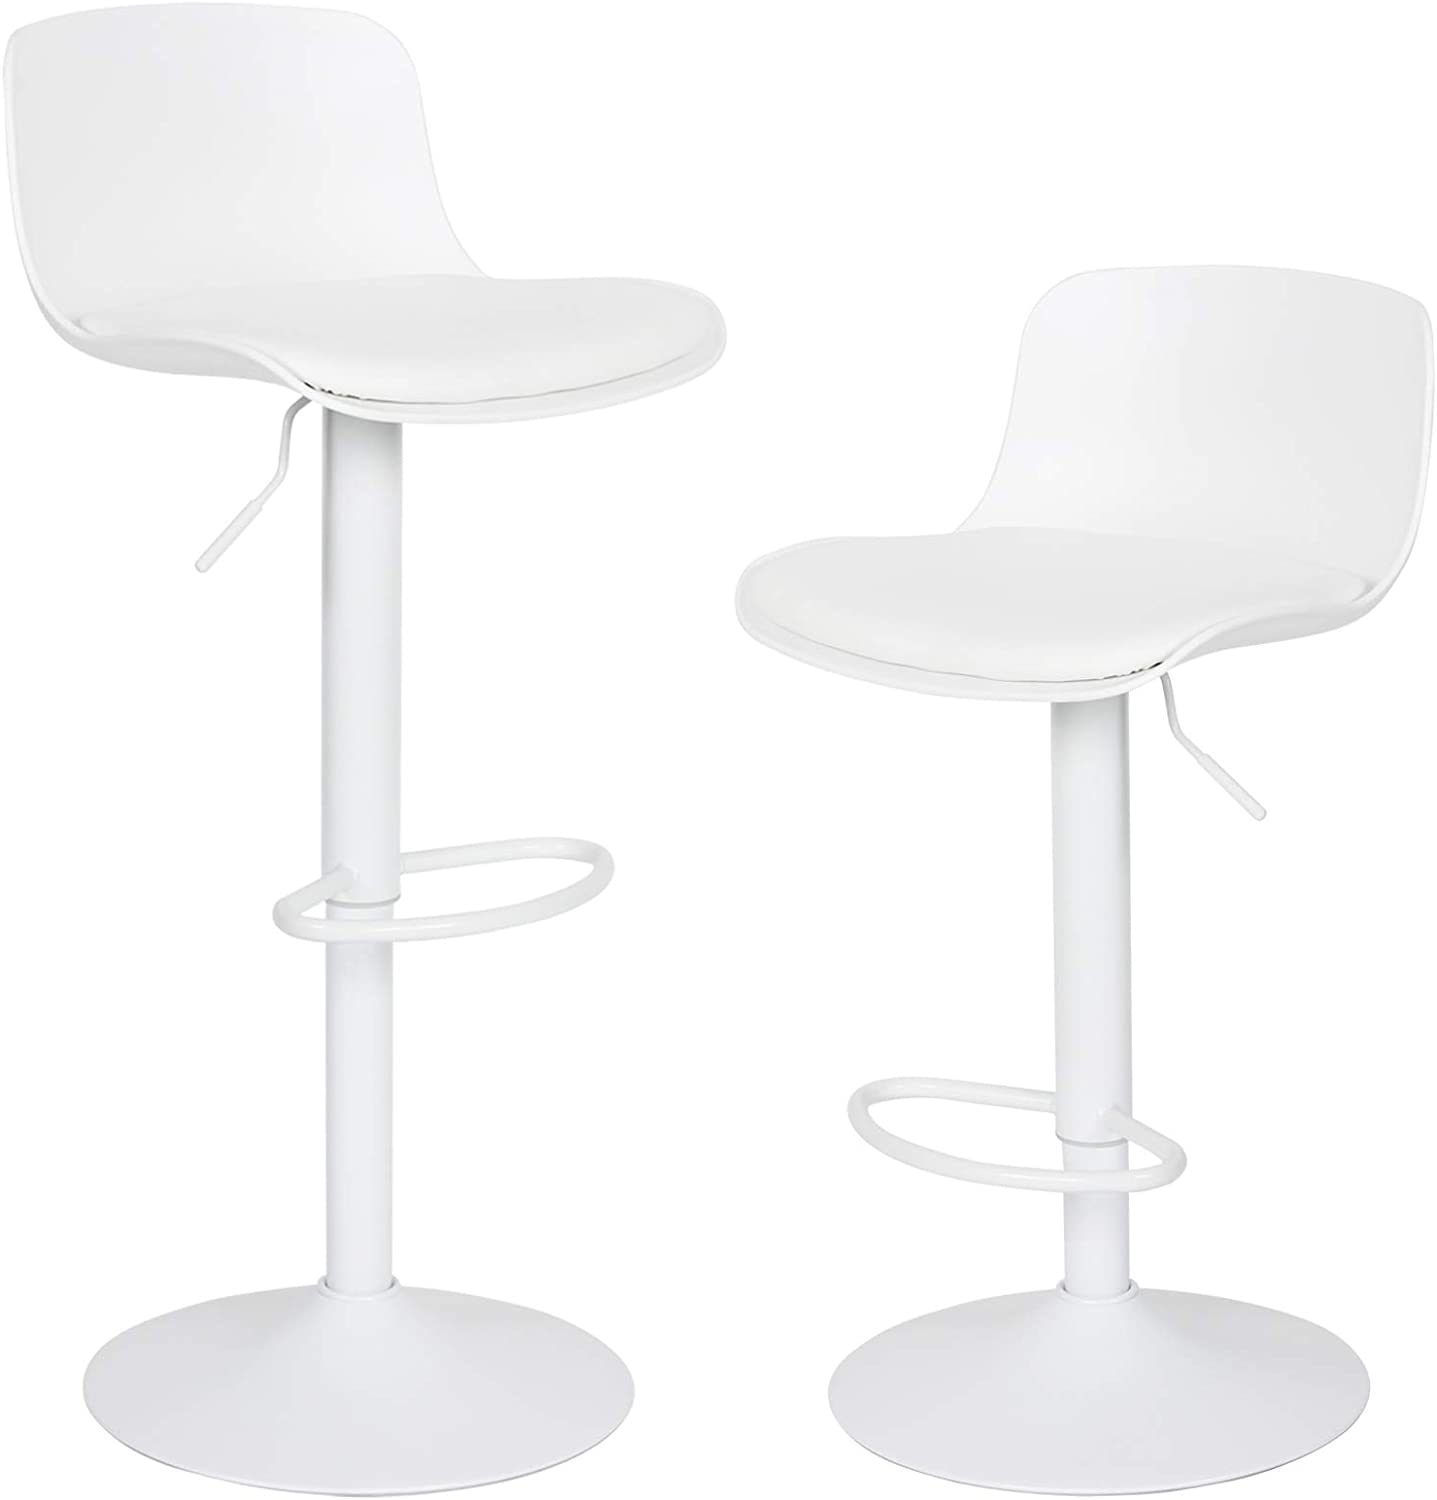 Younike Furniture Modern Design Barstools With Adjustable Height And 360 Rotation Ergonomic Streamlined Polypropylene High Bar Stools For Bar Counter Kitchen And Home Set Of 2 White Amazon Co Uk Kitchen Home